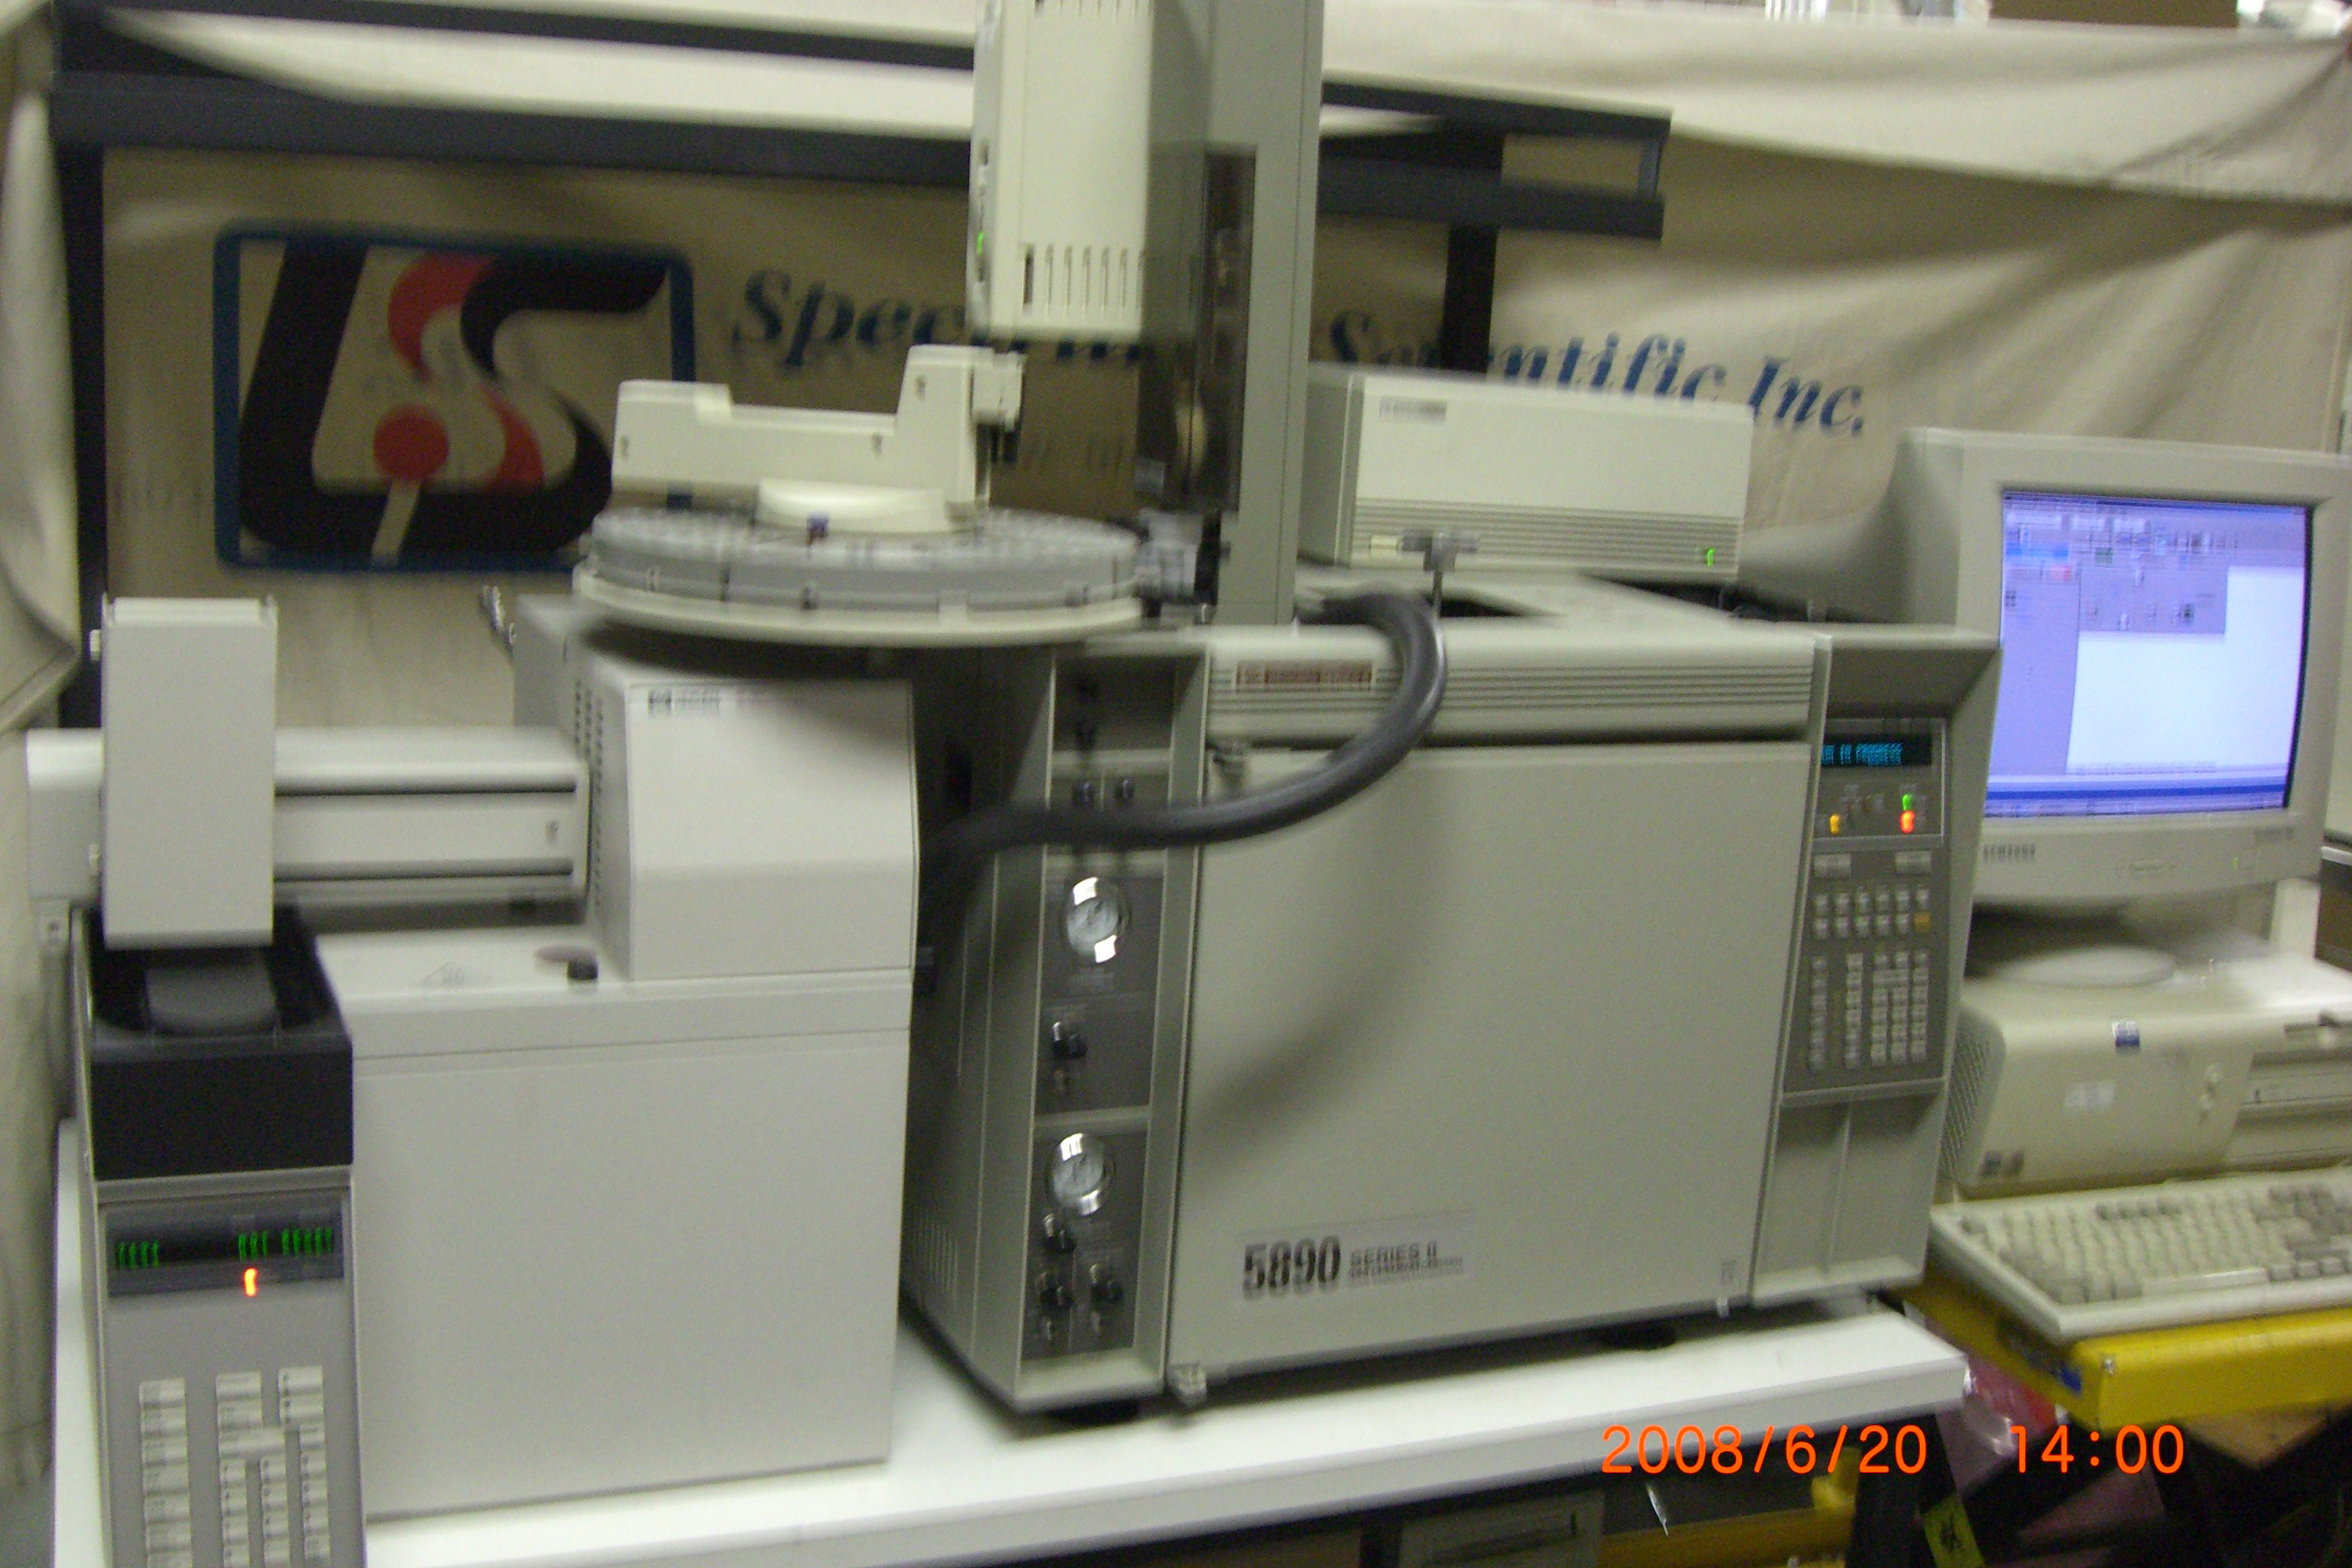 HP 5890 II GC with Headspace sampler 7694